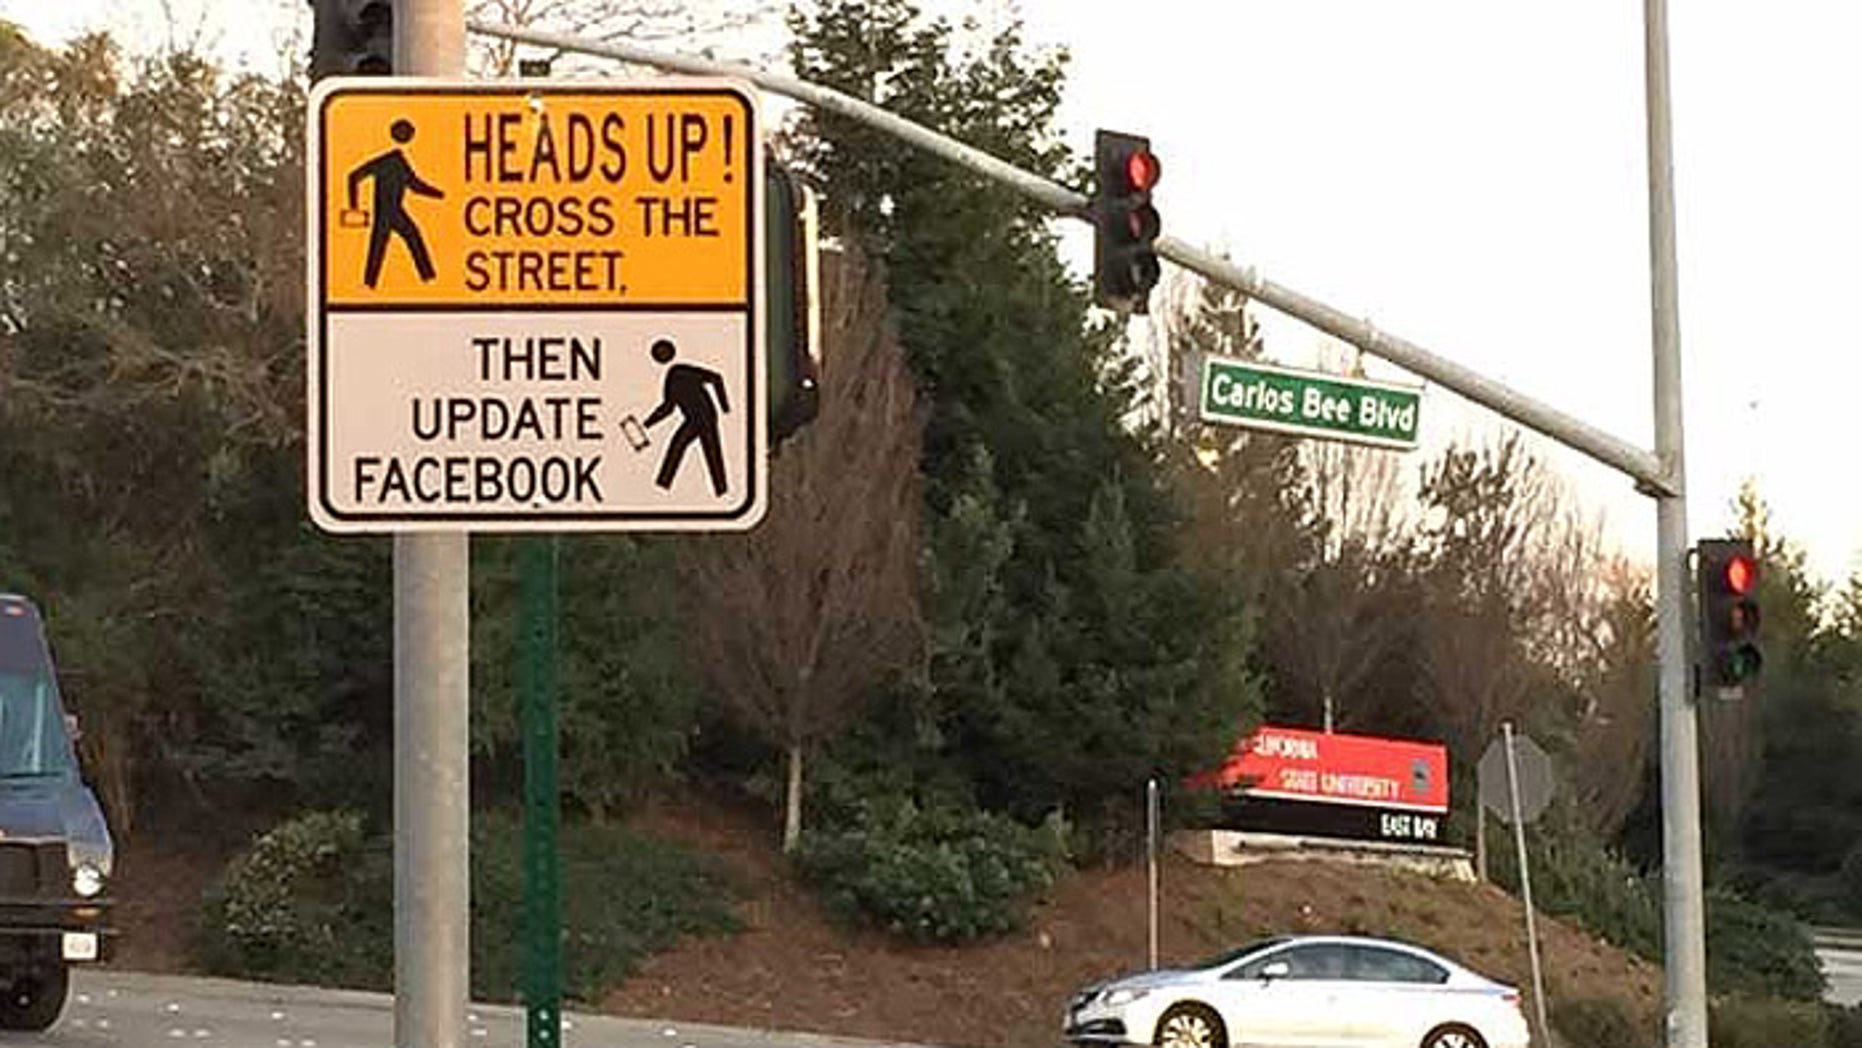 The city of Hayward, Calif., takes safety seriously, but still has a sense of humor. (Courtesy: KTVU)